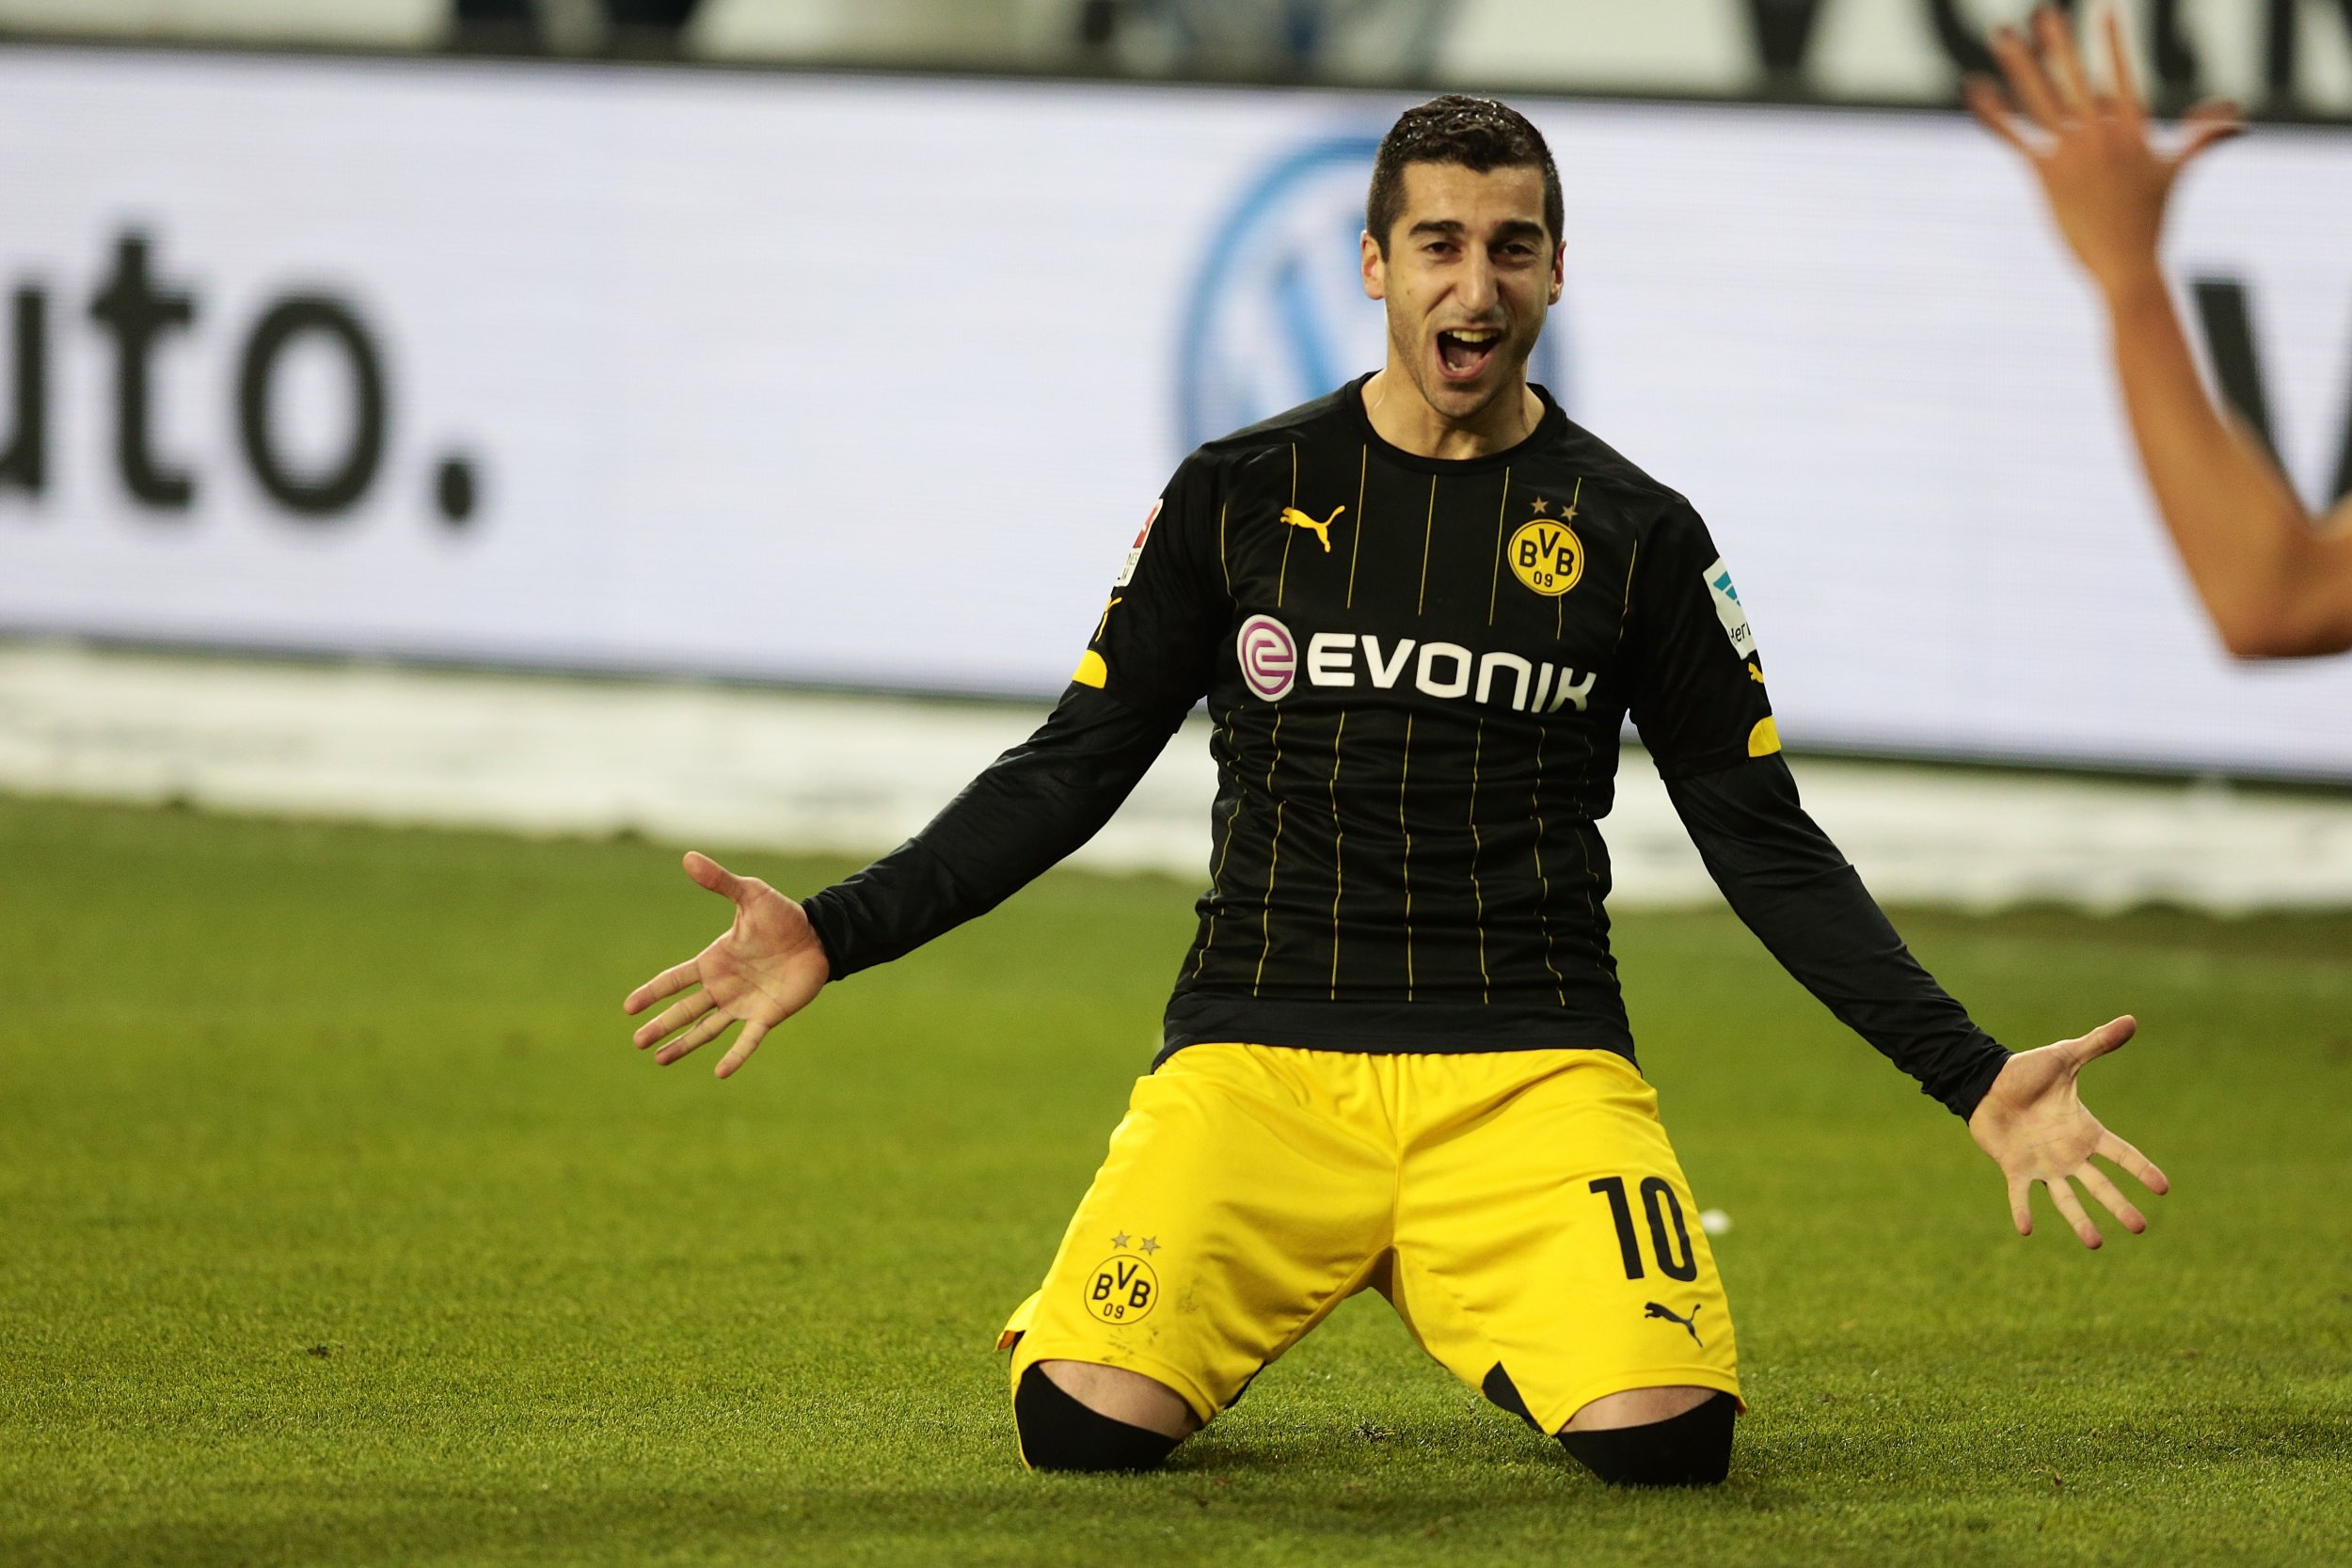 Henrikh Mkhitaryan is a reported transfer target for Arsenal.